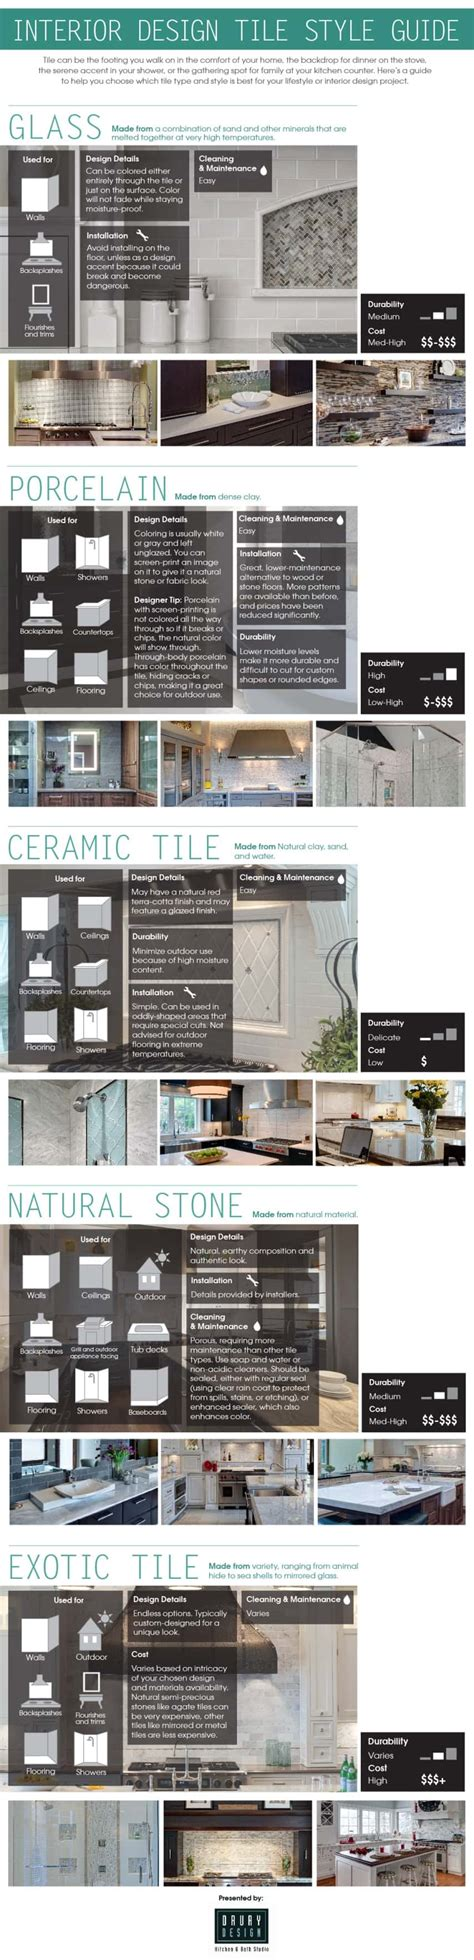 Home Interior Design Guide | 25 home d 233 cor infographics and cheat sheets that every